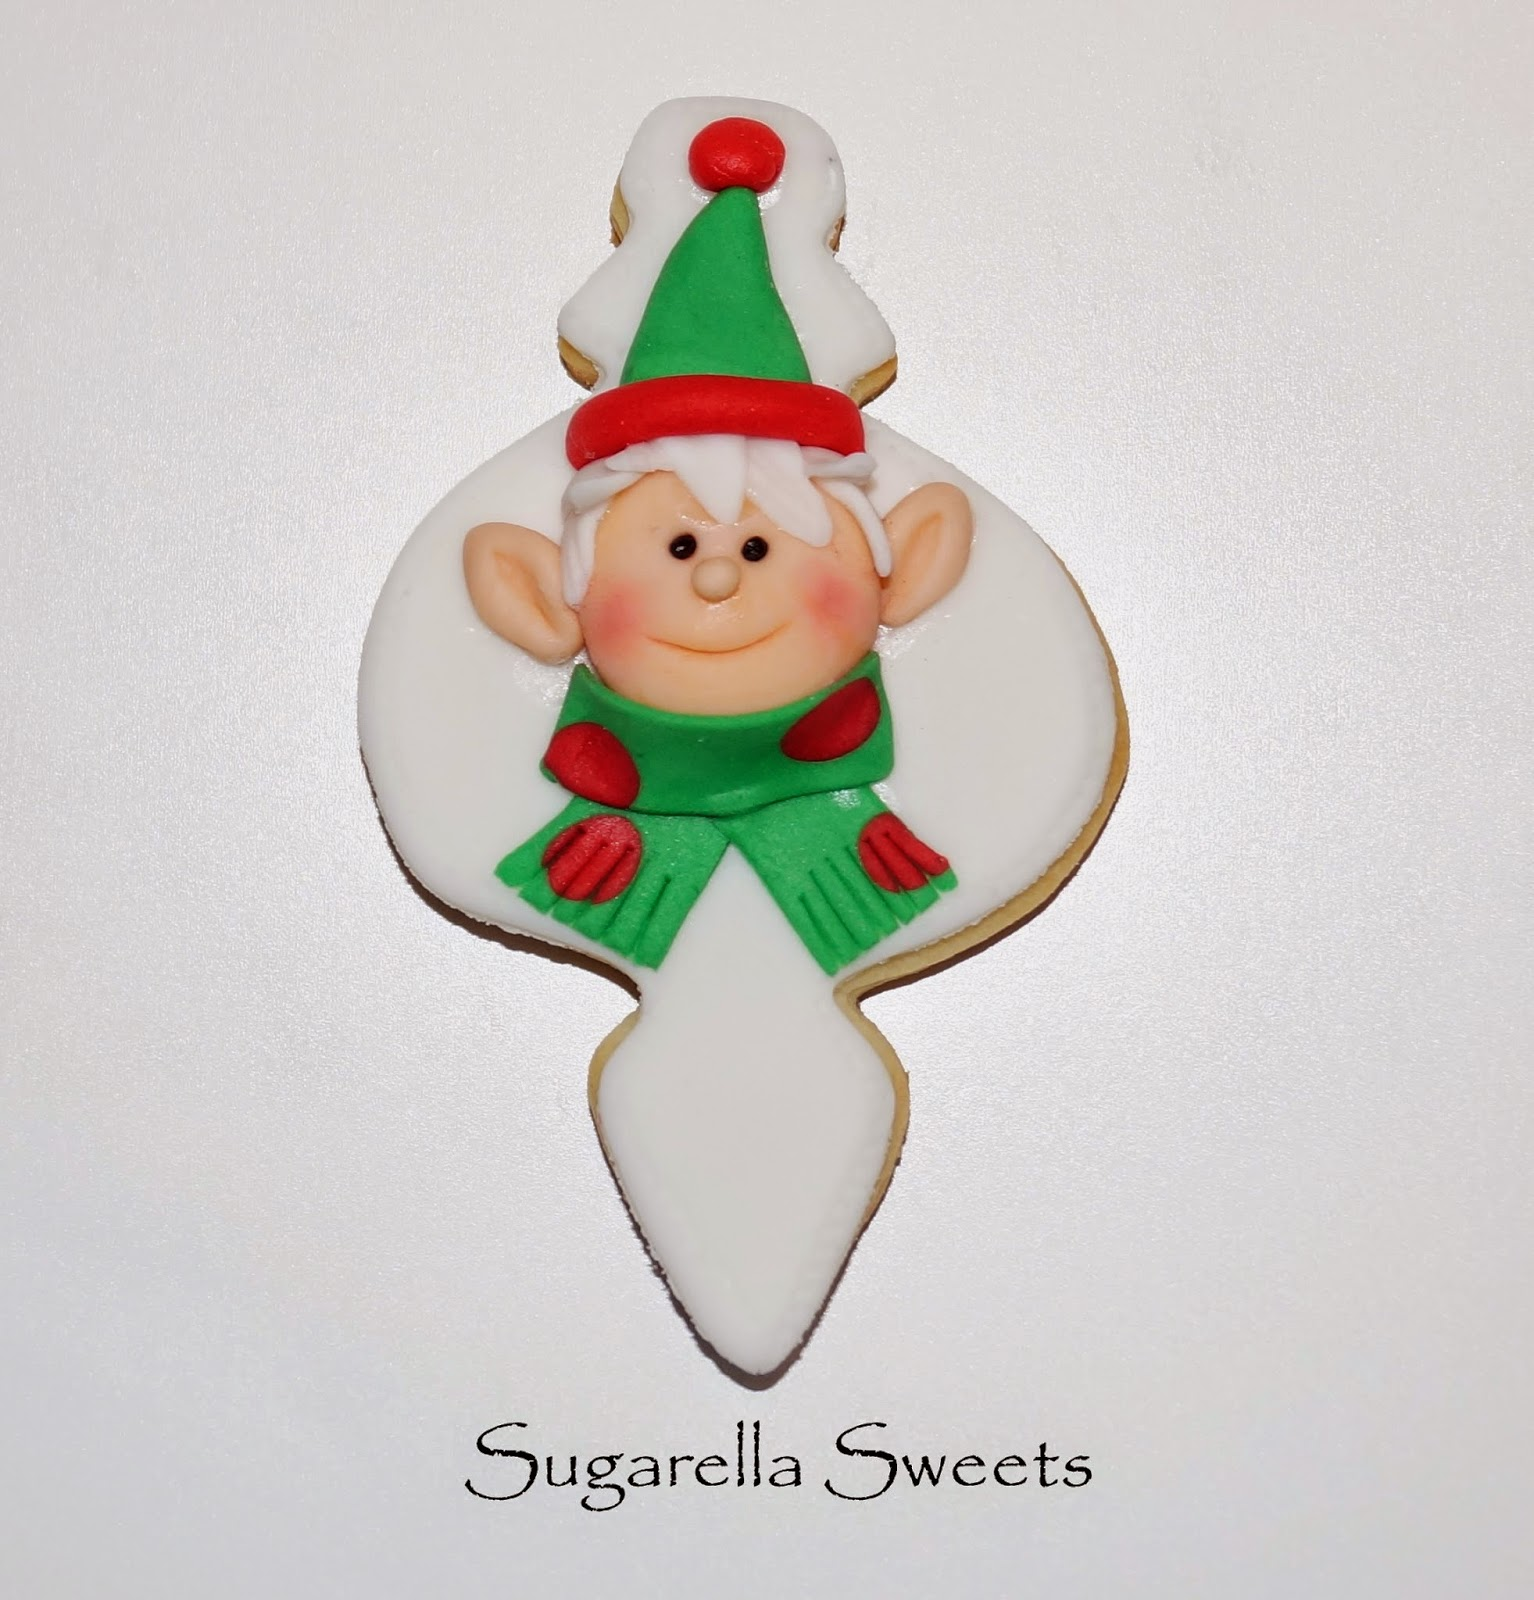 http://sugarellasweetshowto.blogspot.ca/2014/12/how-to-make-elf-cookie.html